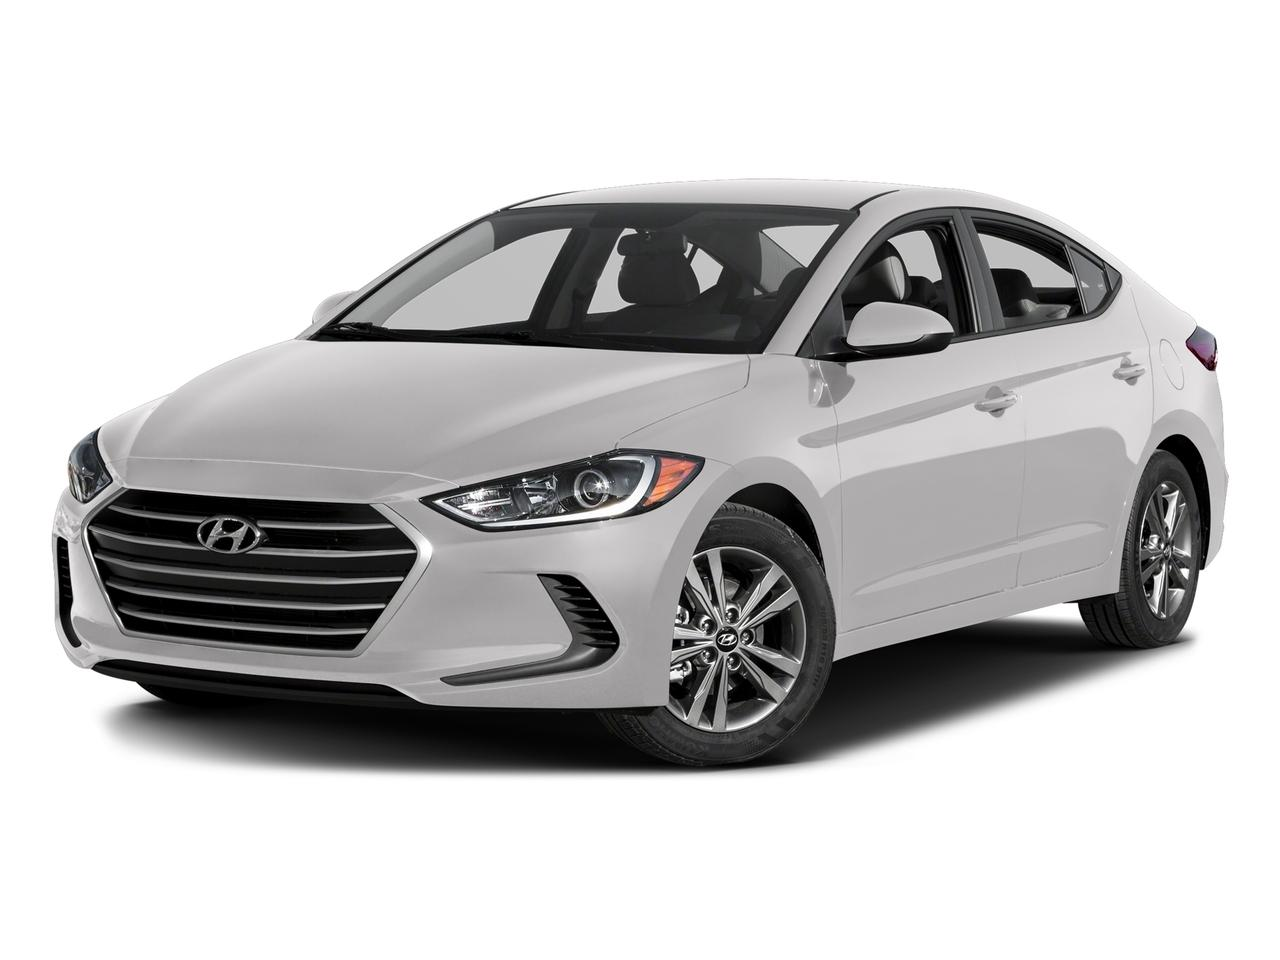 2017 Hyundai Elantra Vehicle Photo in Milford, OH 45150